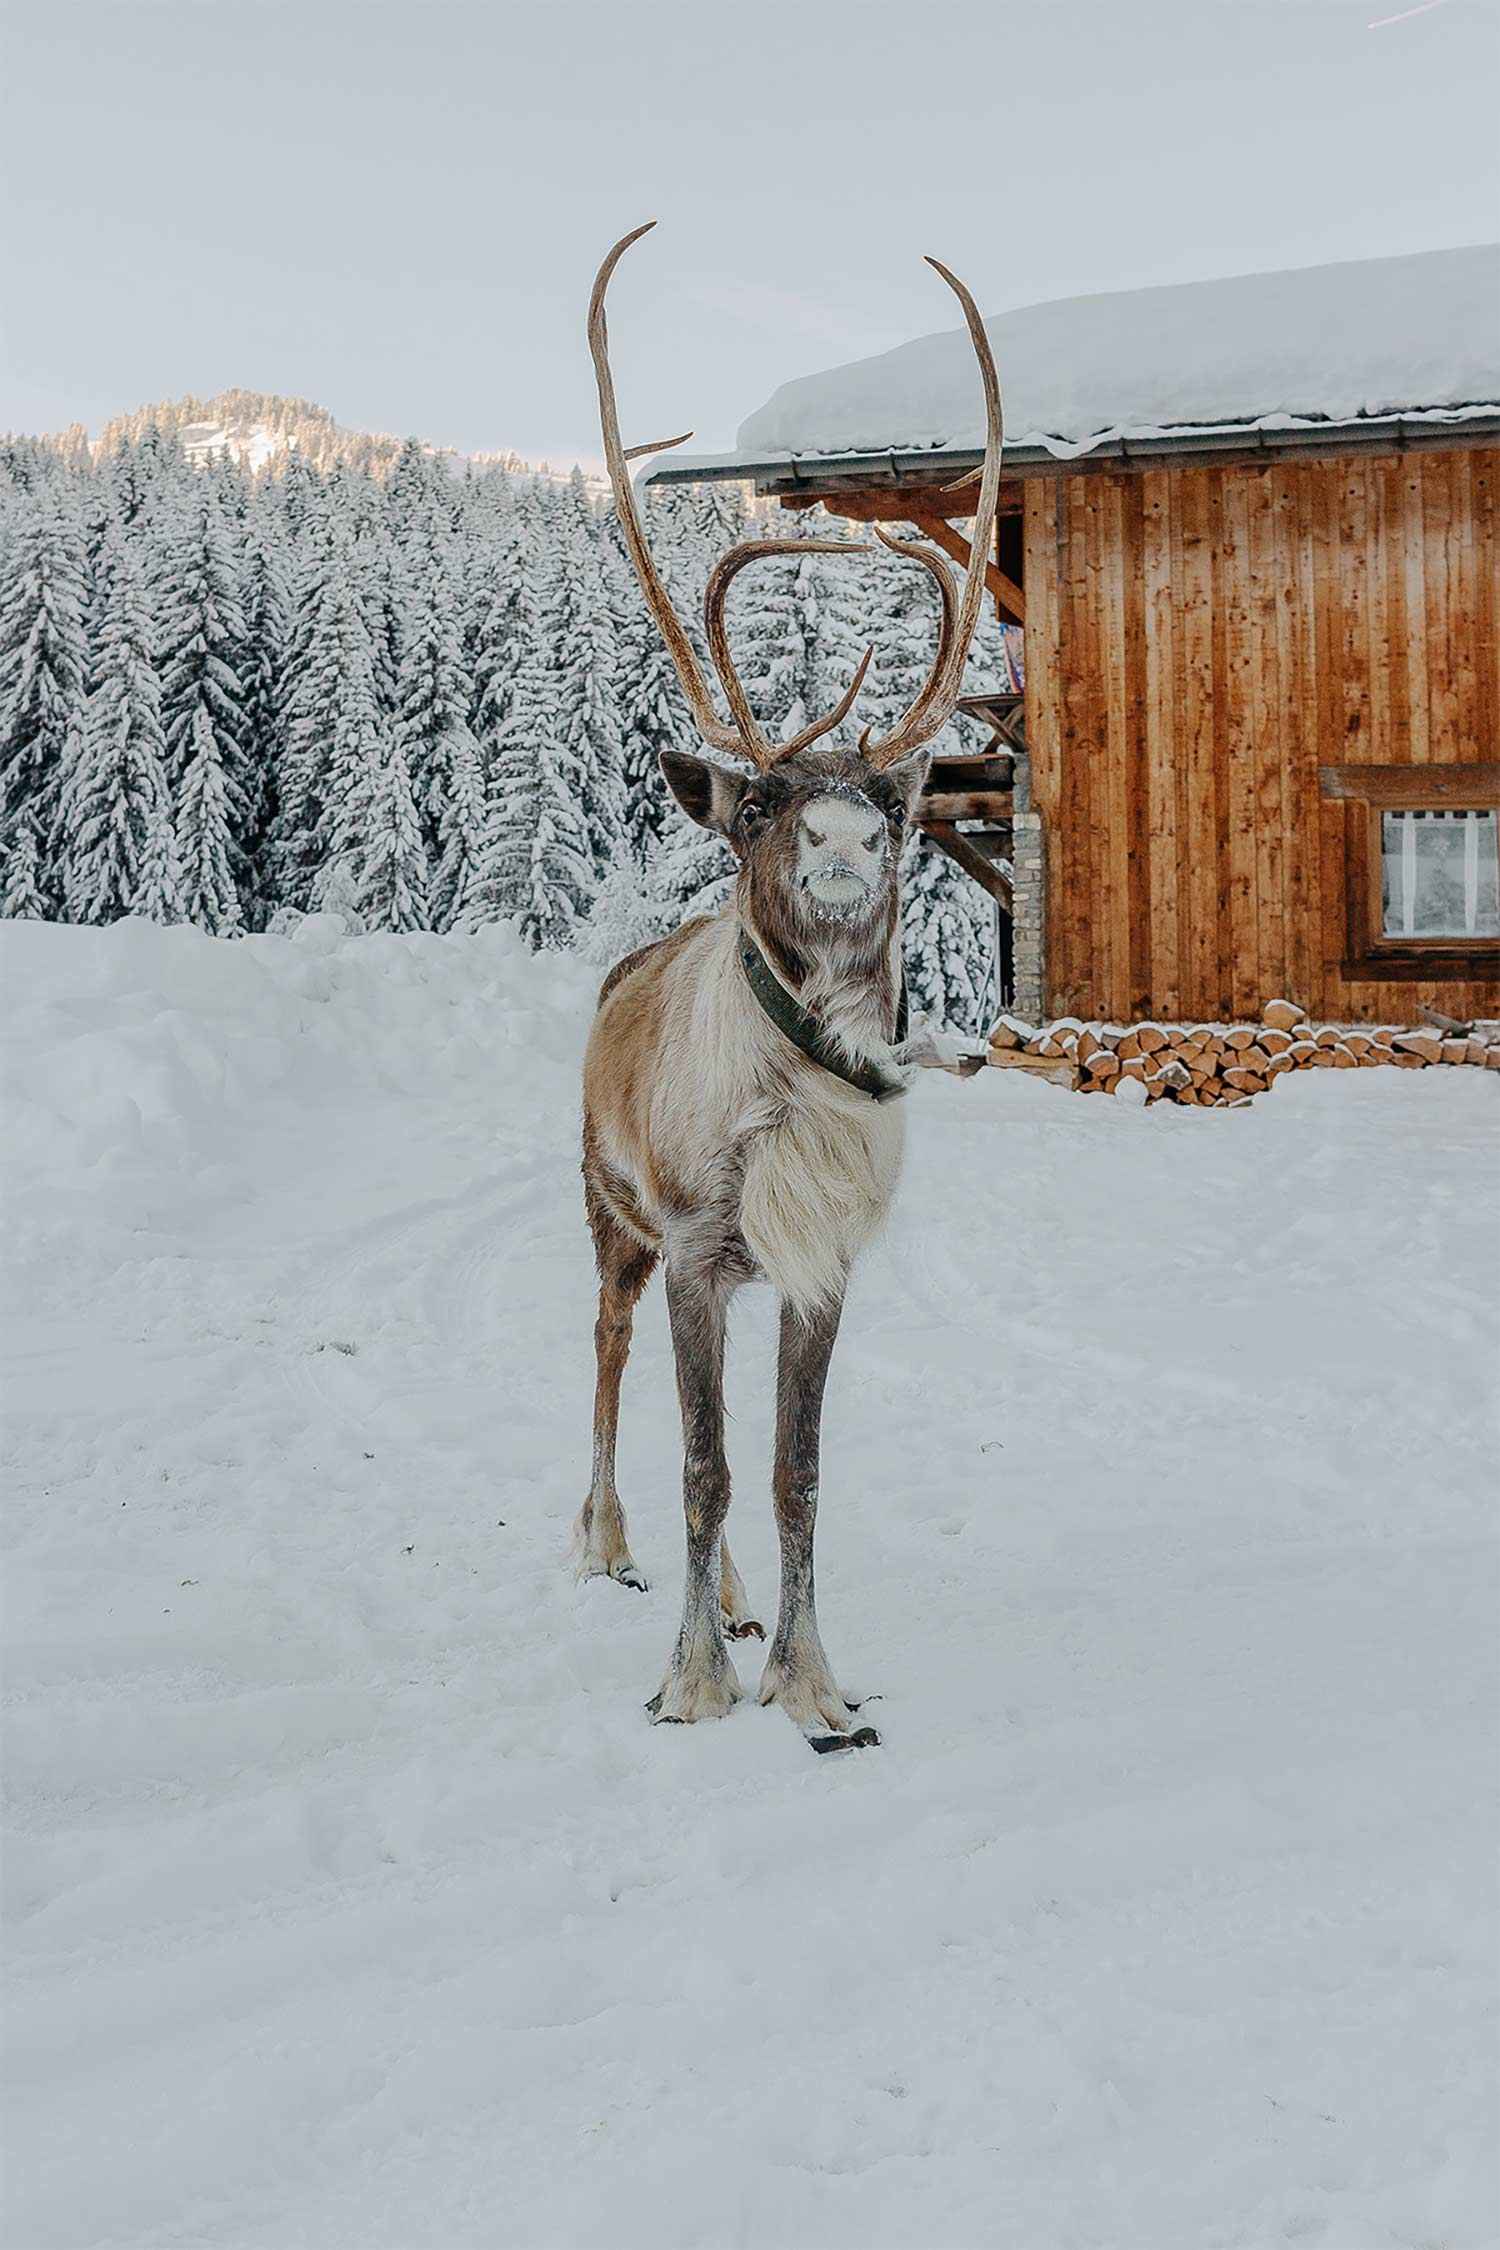 Visit to the Reindeer Farm